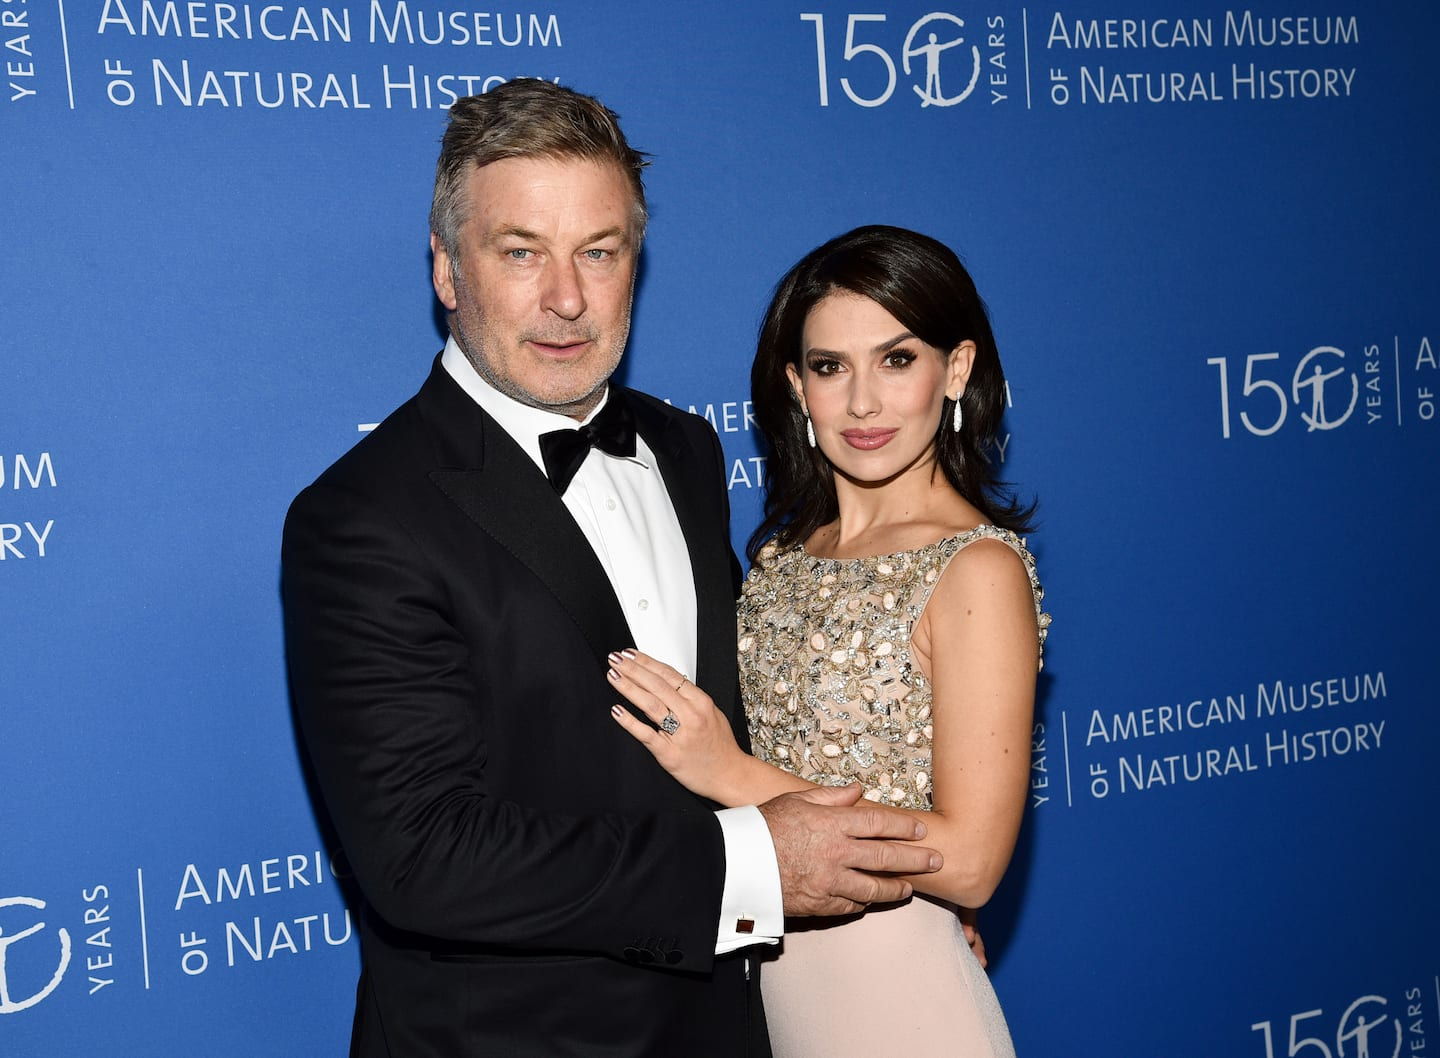 The Hilaria Baldwin accent controversy, explained, from Instagram joke to Alec Baldwin rant